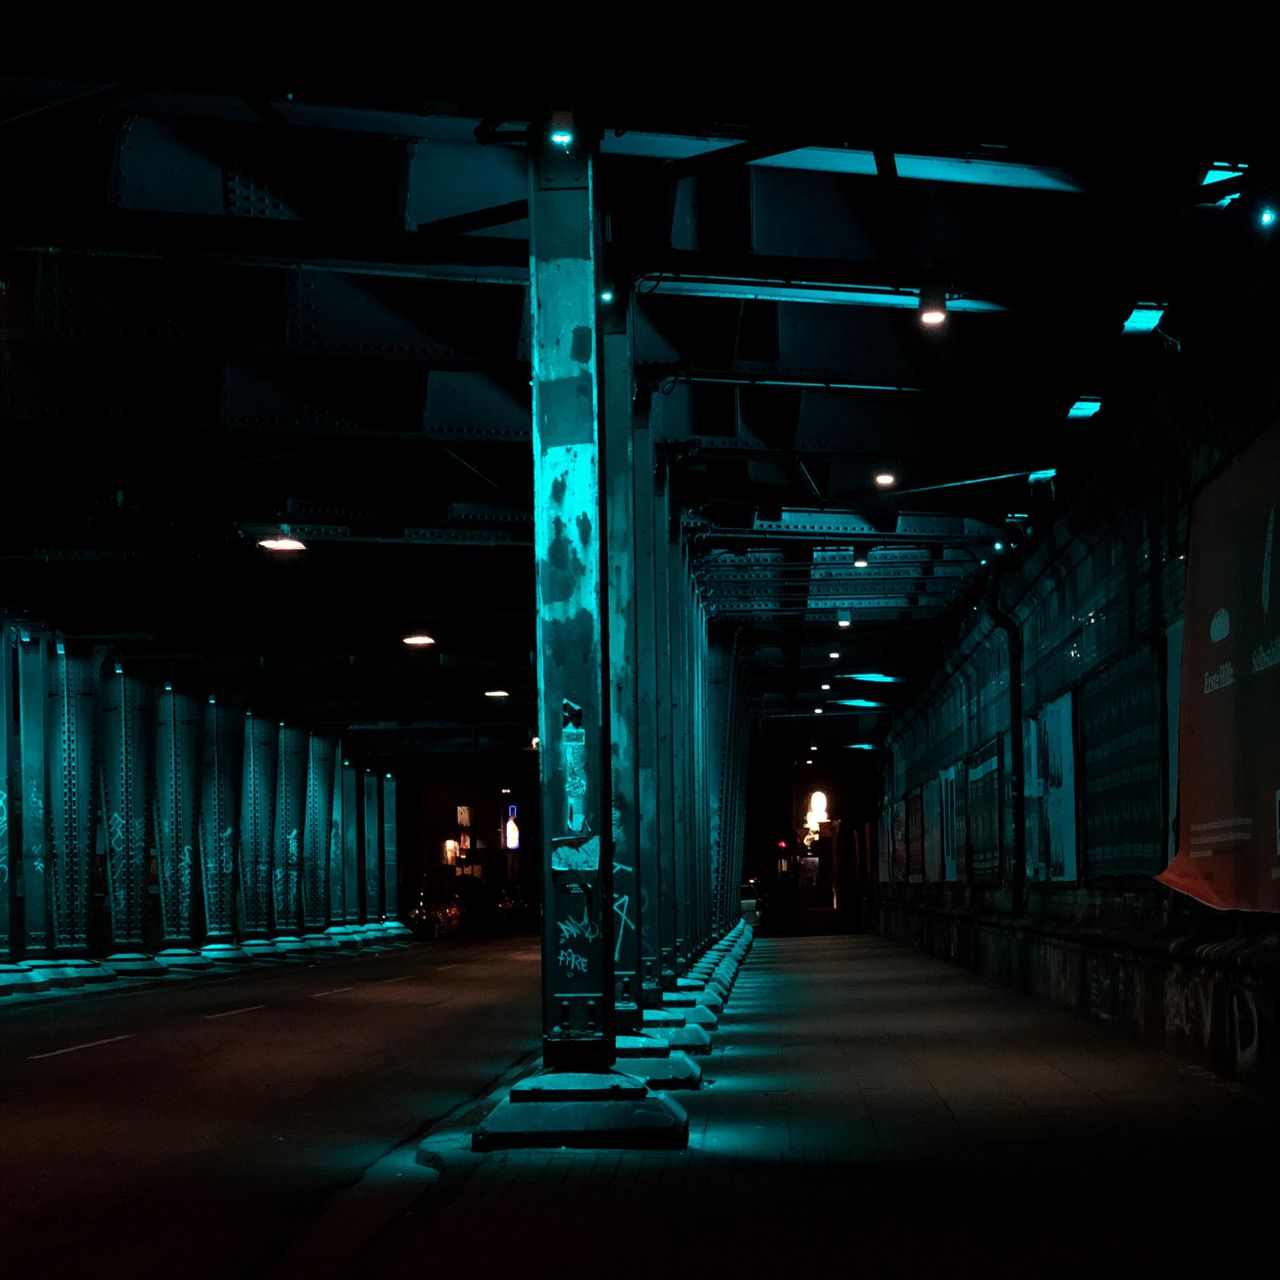 architecture, the way forward, direction, built structure, illuminated, lighting equipment, transportation, night, no people, architectural column, in a row, road, empty, building, city, footpath, outdoors, bridge, light, ceiling, long